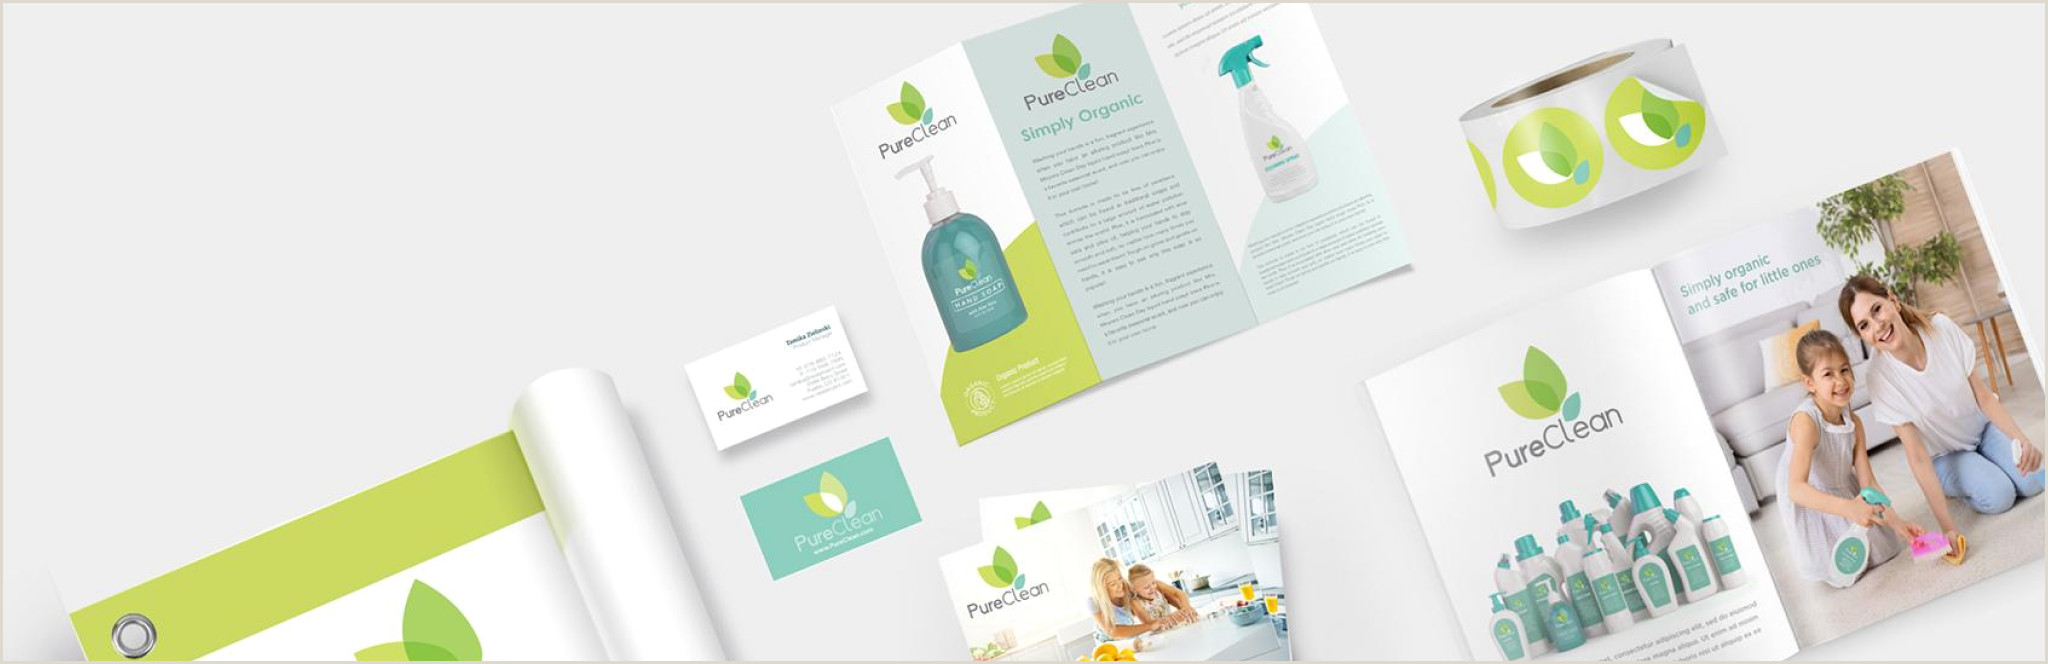 Order Unique Business Cards Online Printplace High Quality Line Printing Services